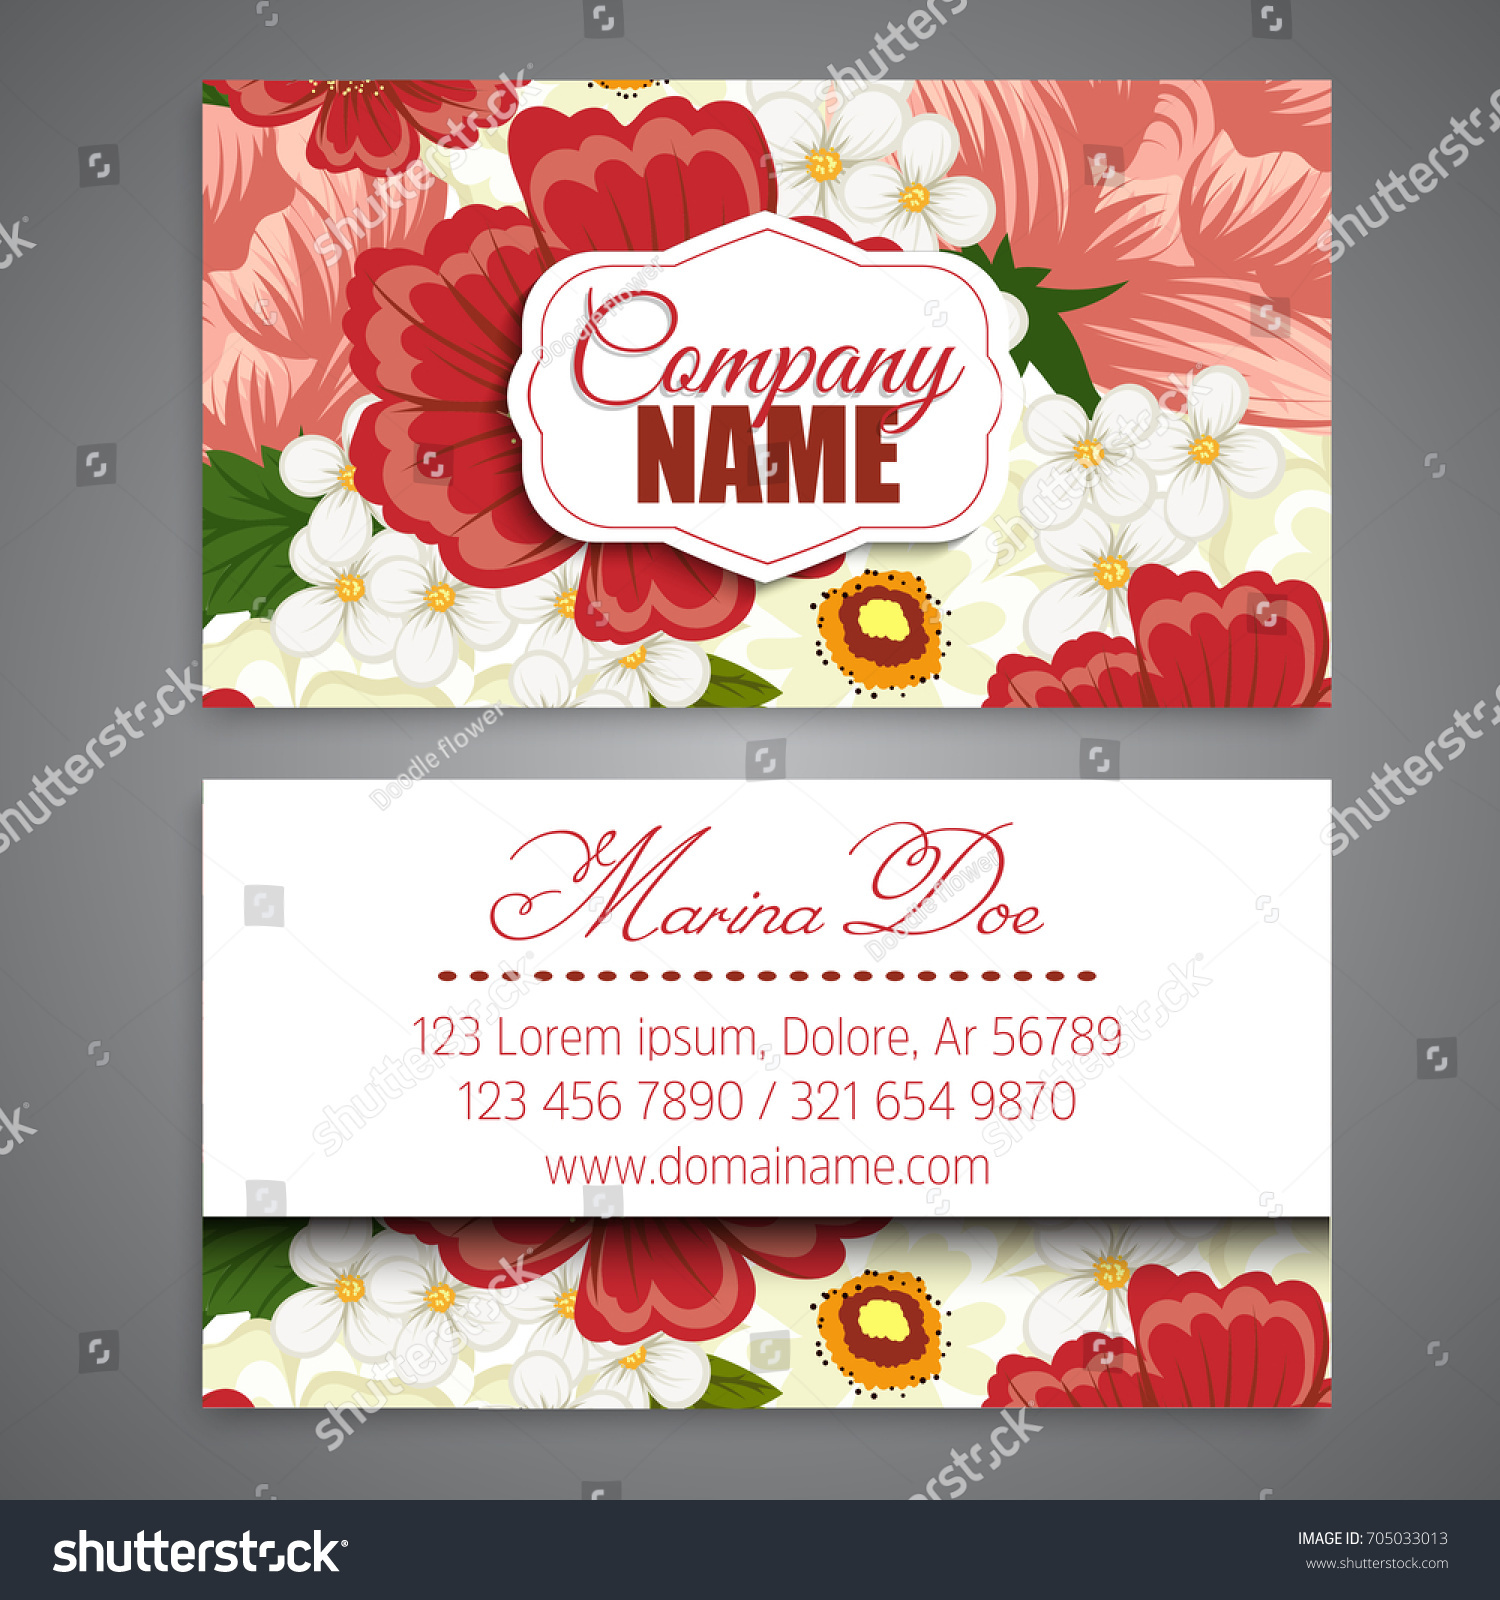 Floral Business Card Template Vector Stock Vector (2018) 705033013 ...